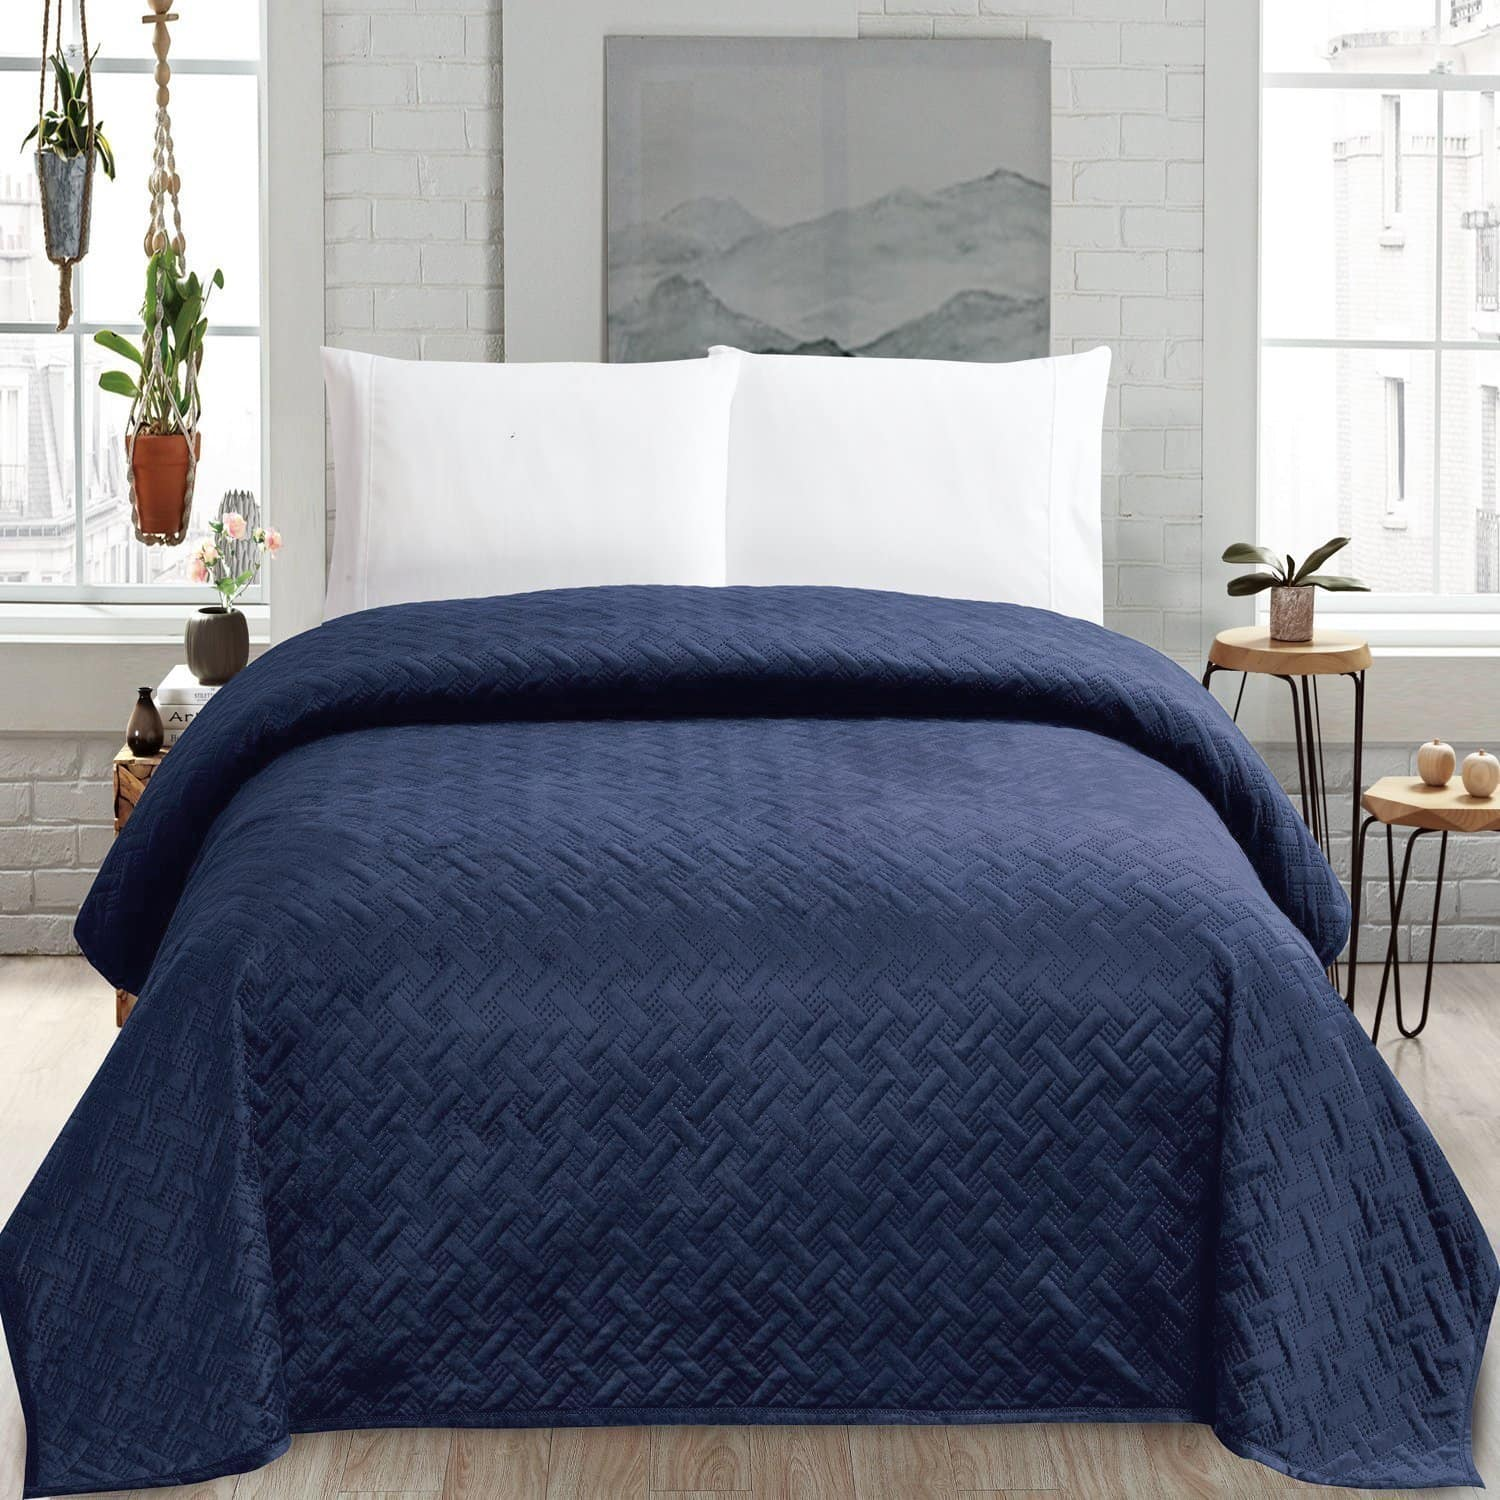 HollyHOME Super Soft King Size Quilt Comforter for only $22.95 AC @Amazon